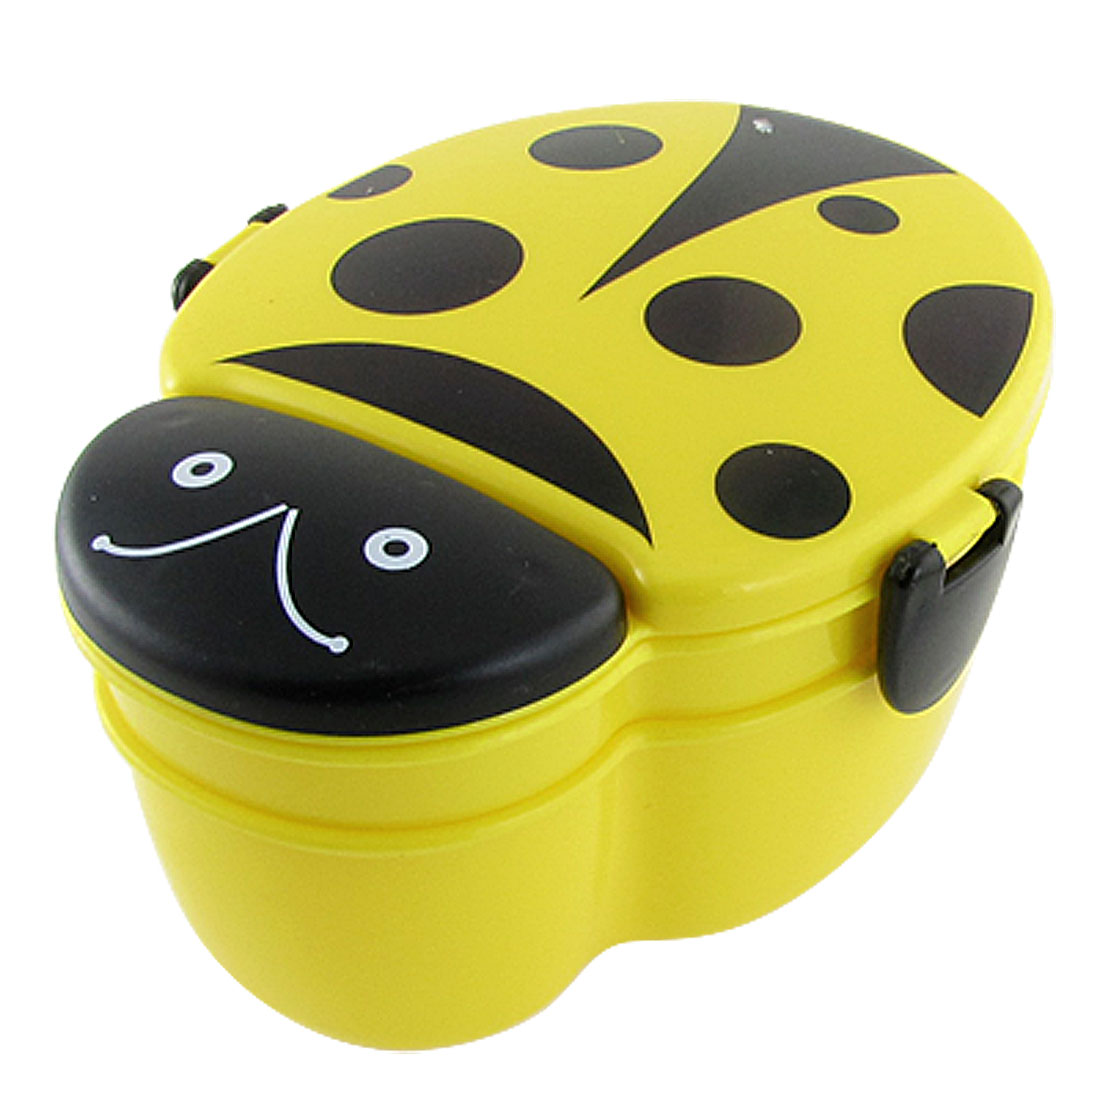 Student Yellow Black Plastic Beetle Shape Lunch Box Case w Spoon